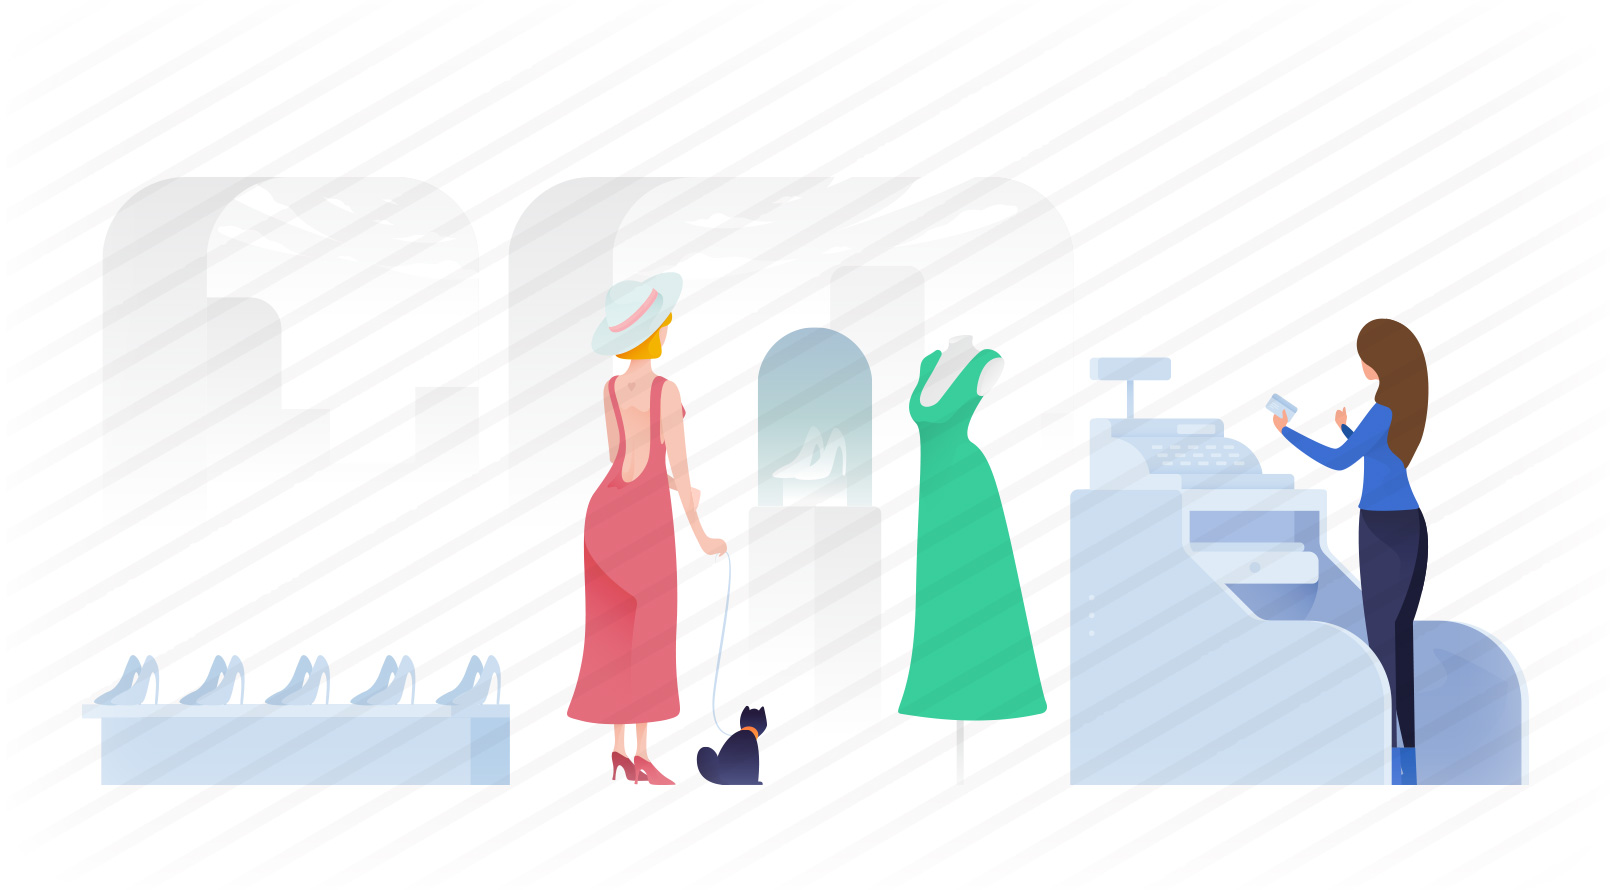 woman-shopping-for-dress-ui-banner-preview